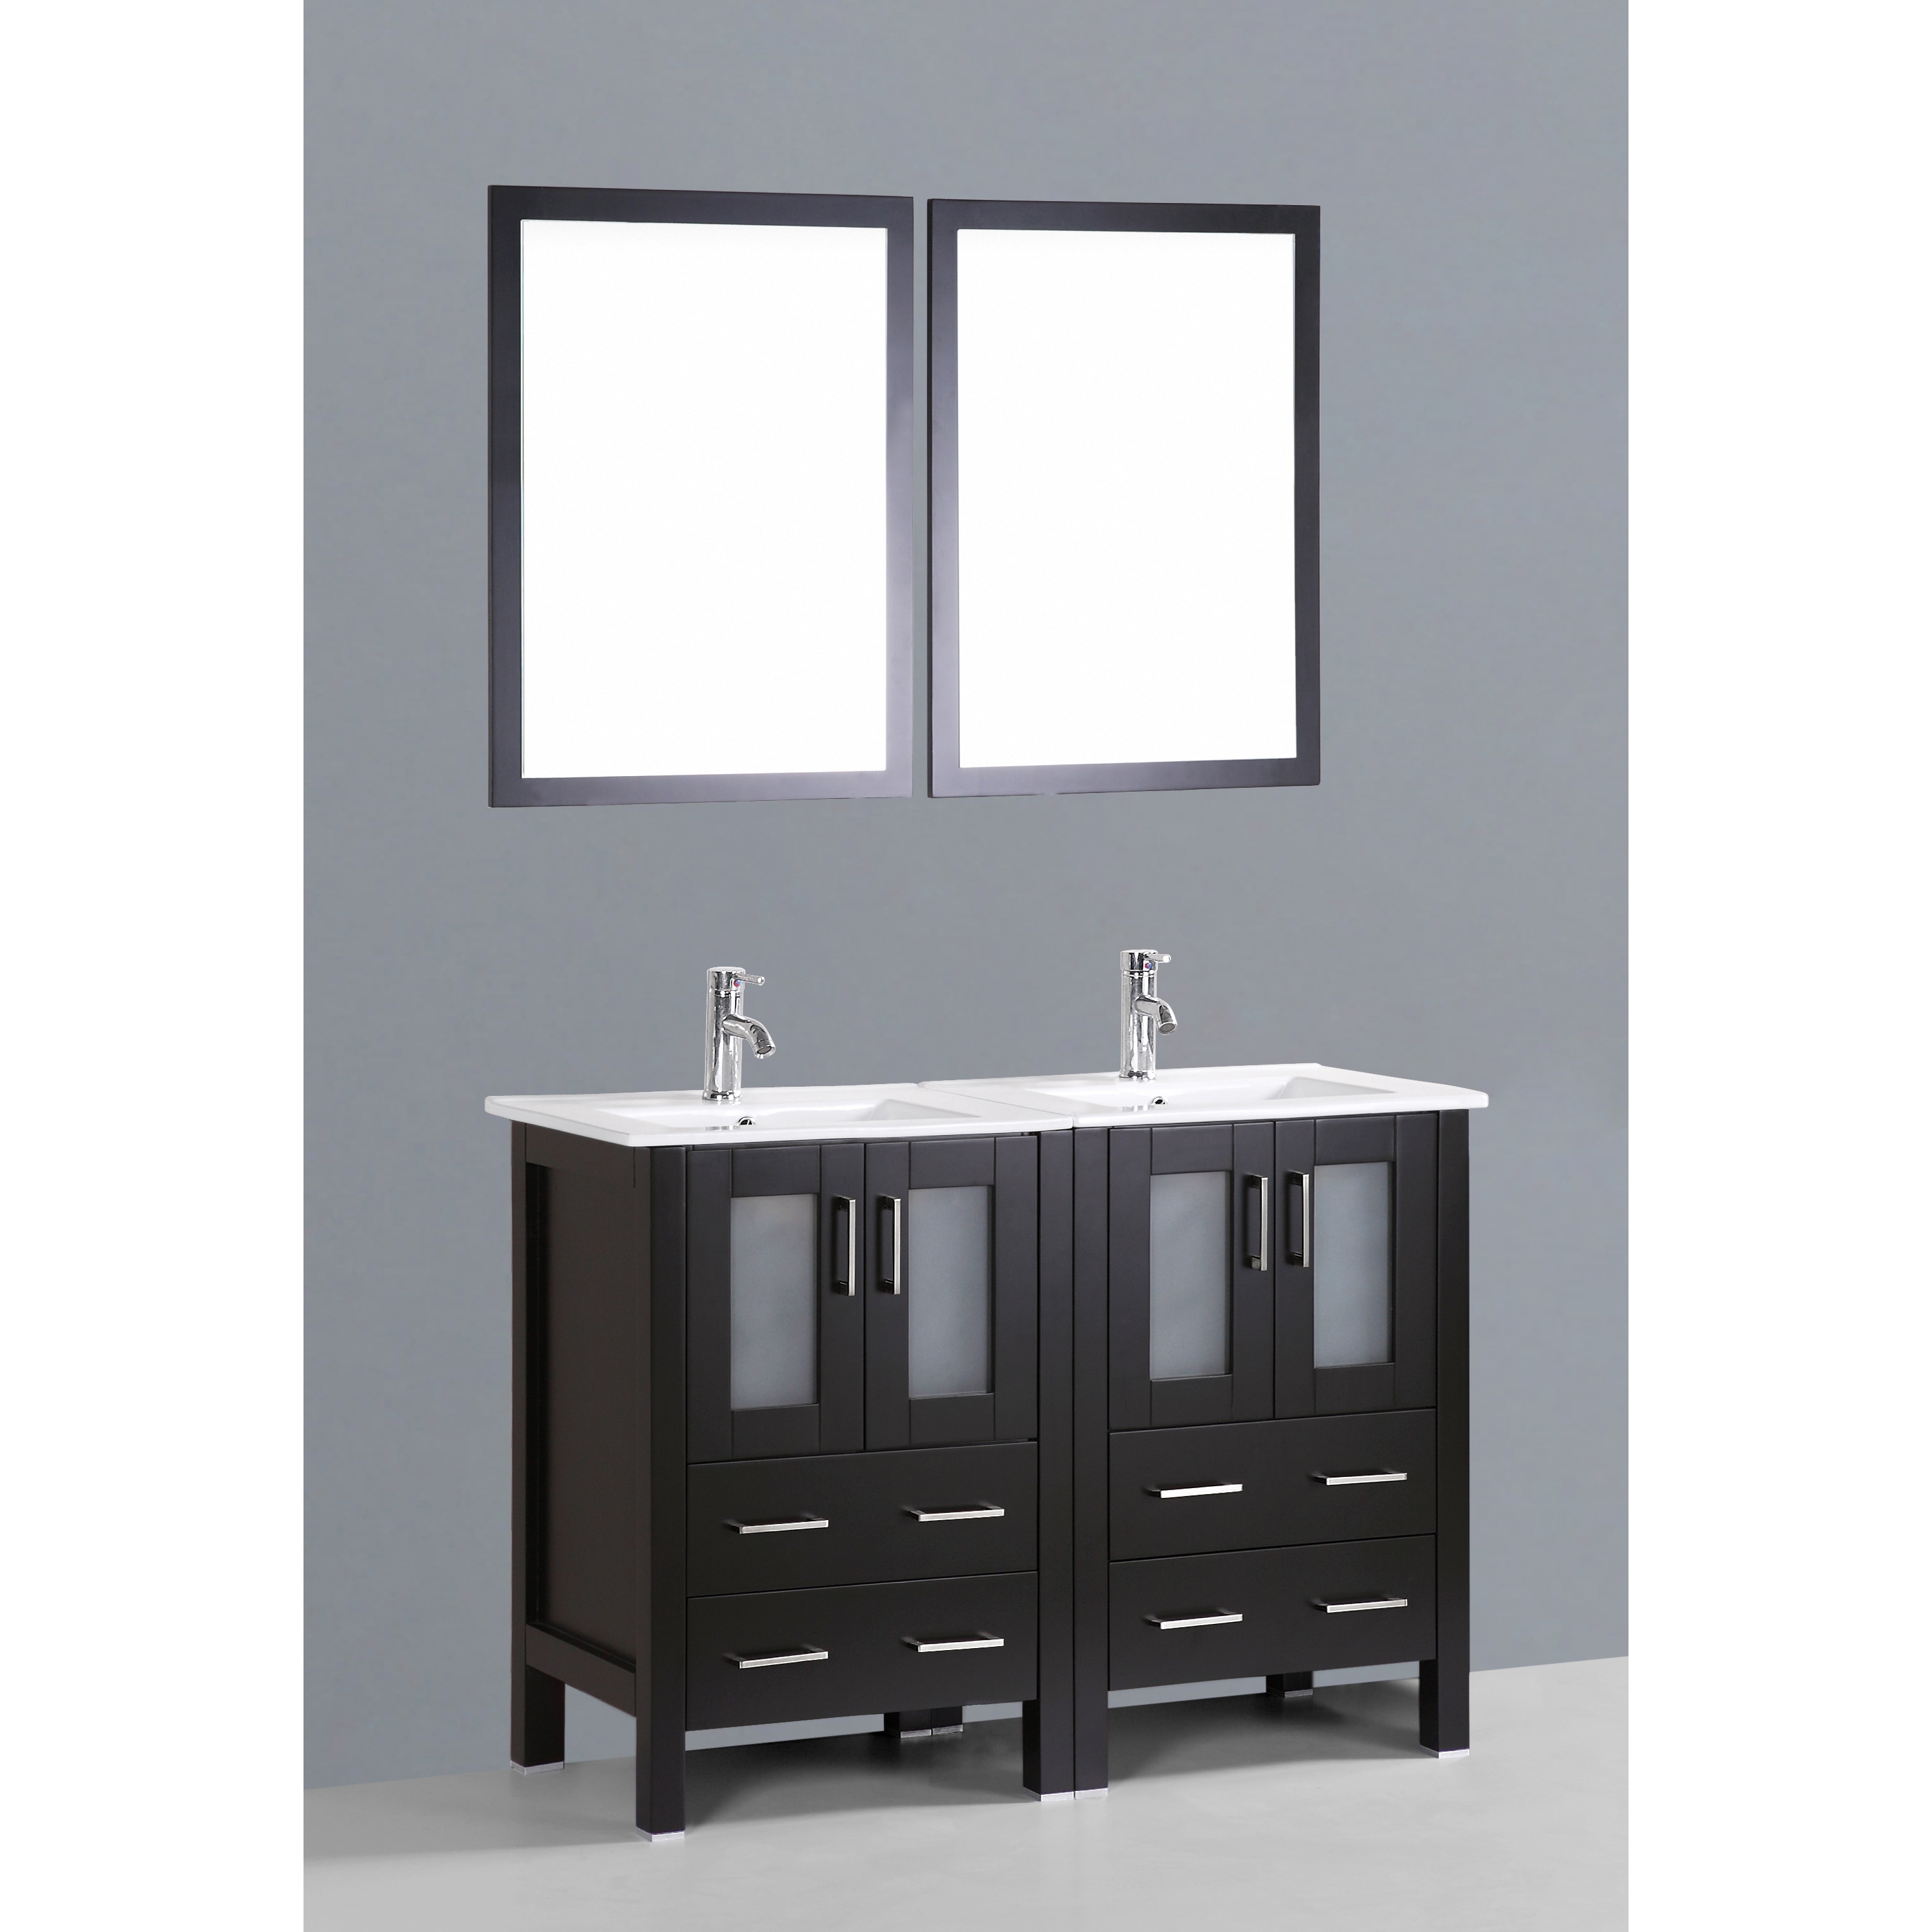 Bosconi ab224u 48 inch double vanity with mirrors and faucets